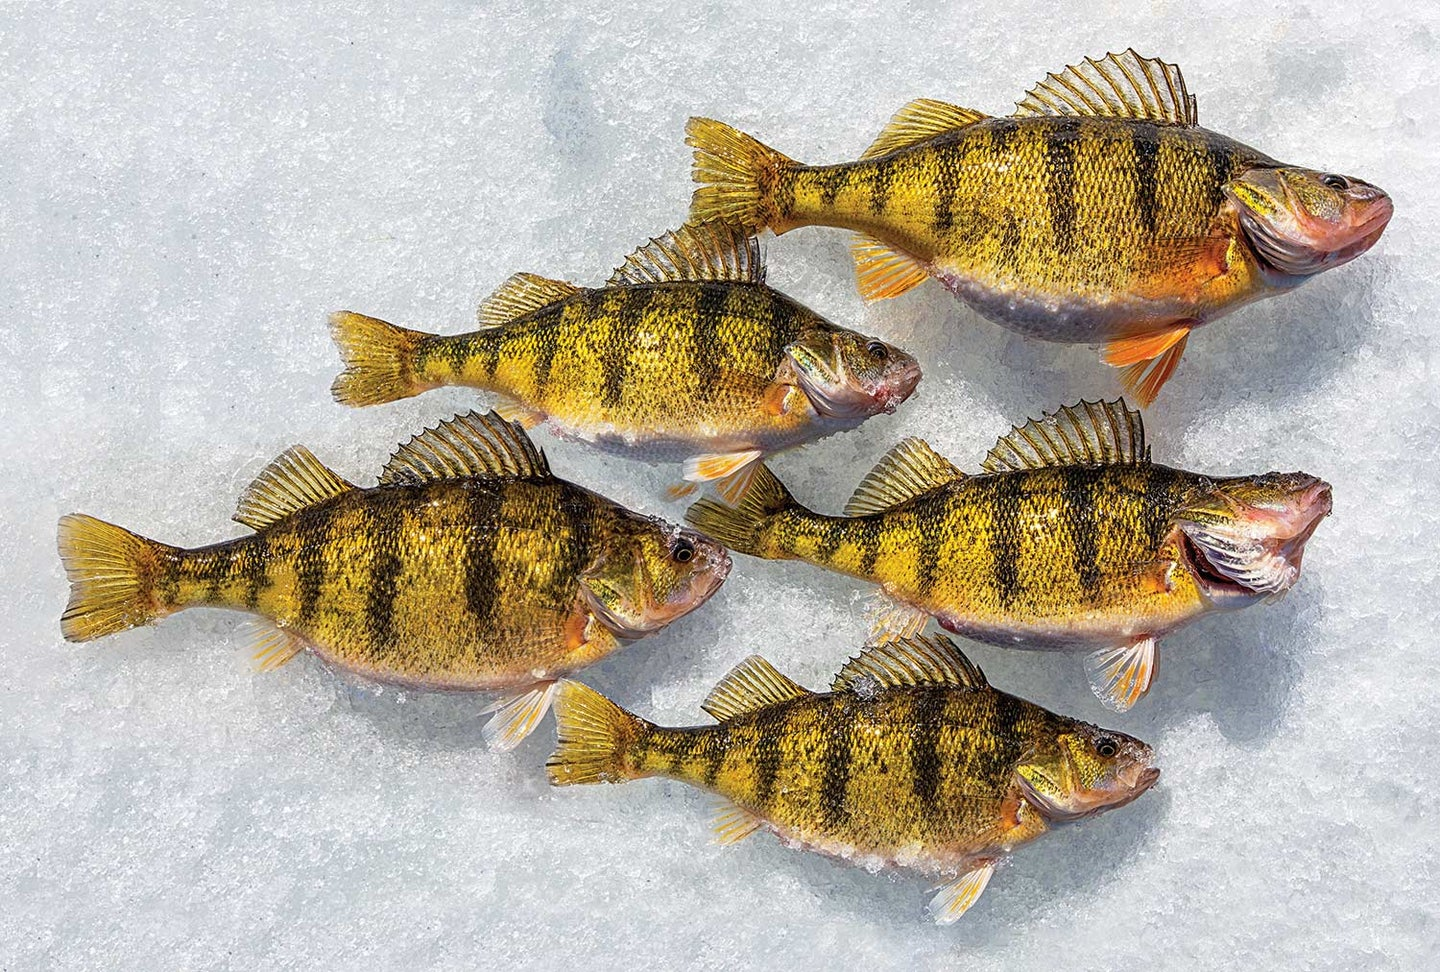 A group of yellow perch on the ice.